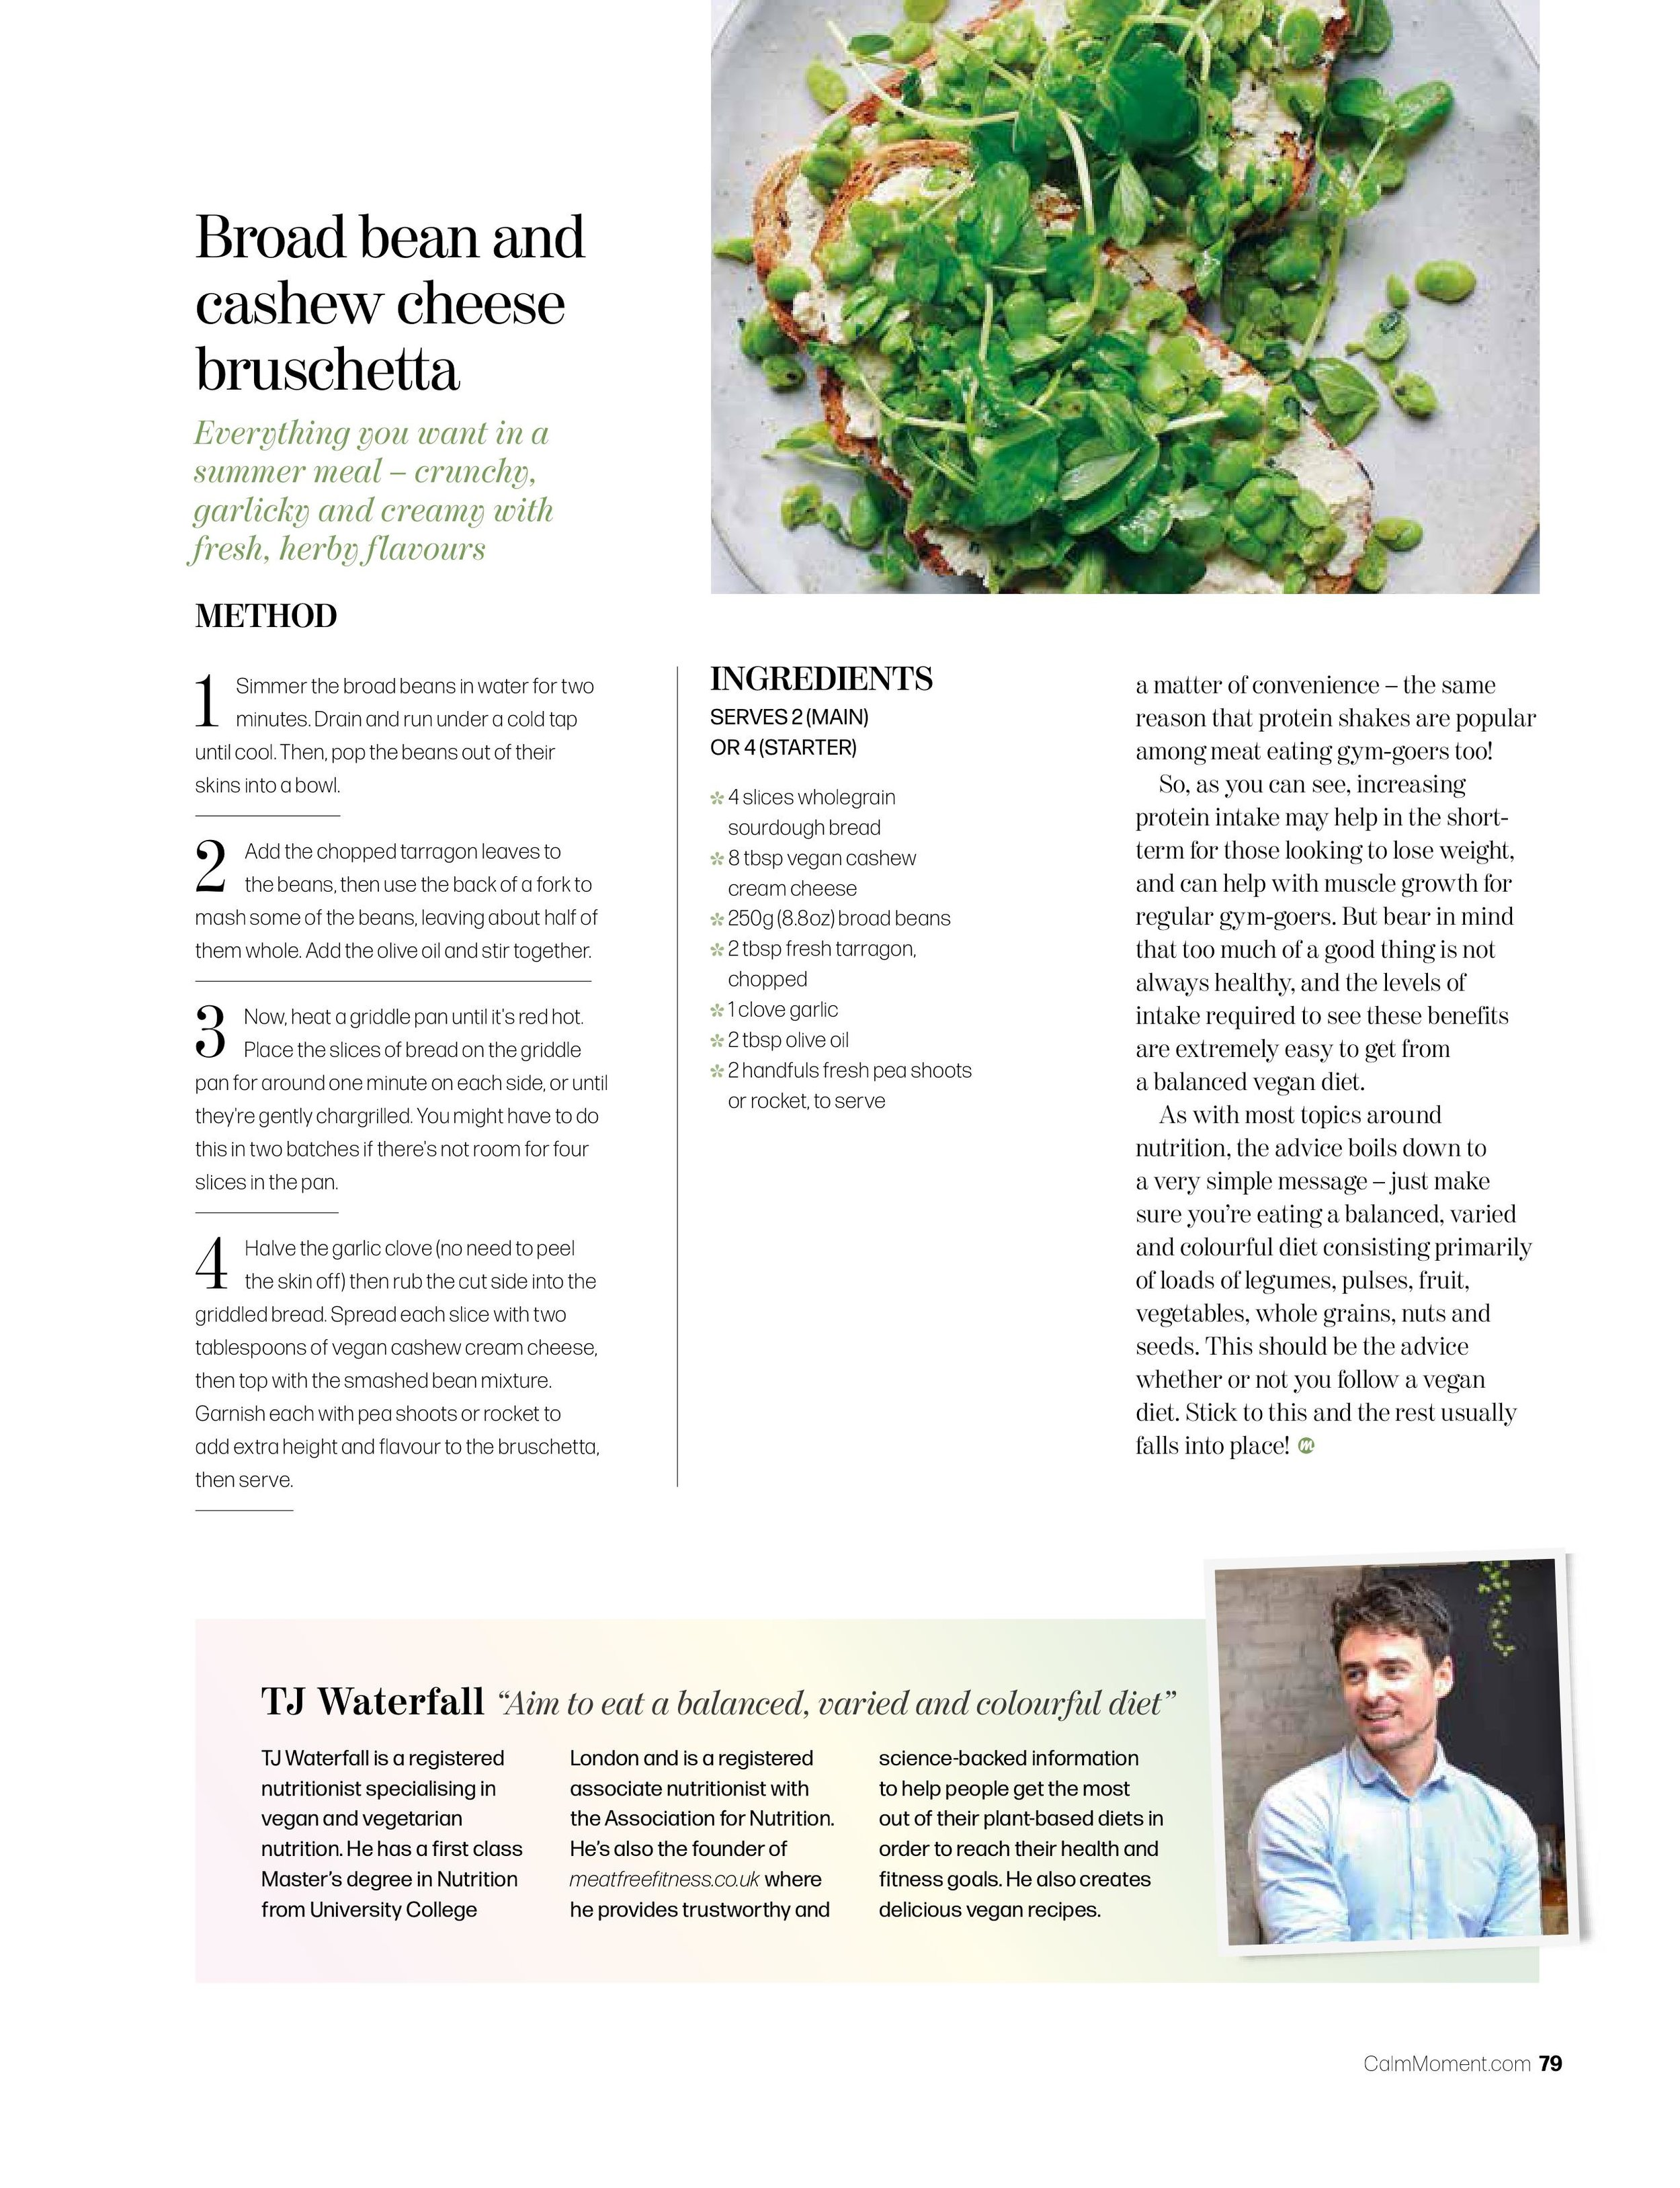 vegan nutrition article feature magazine vegan nutritionist health fitness